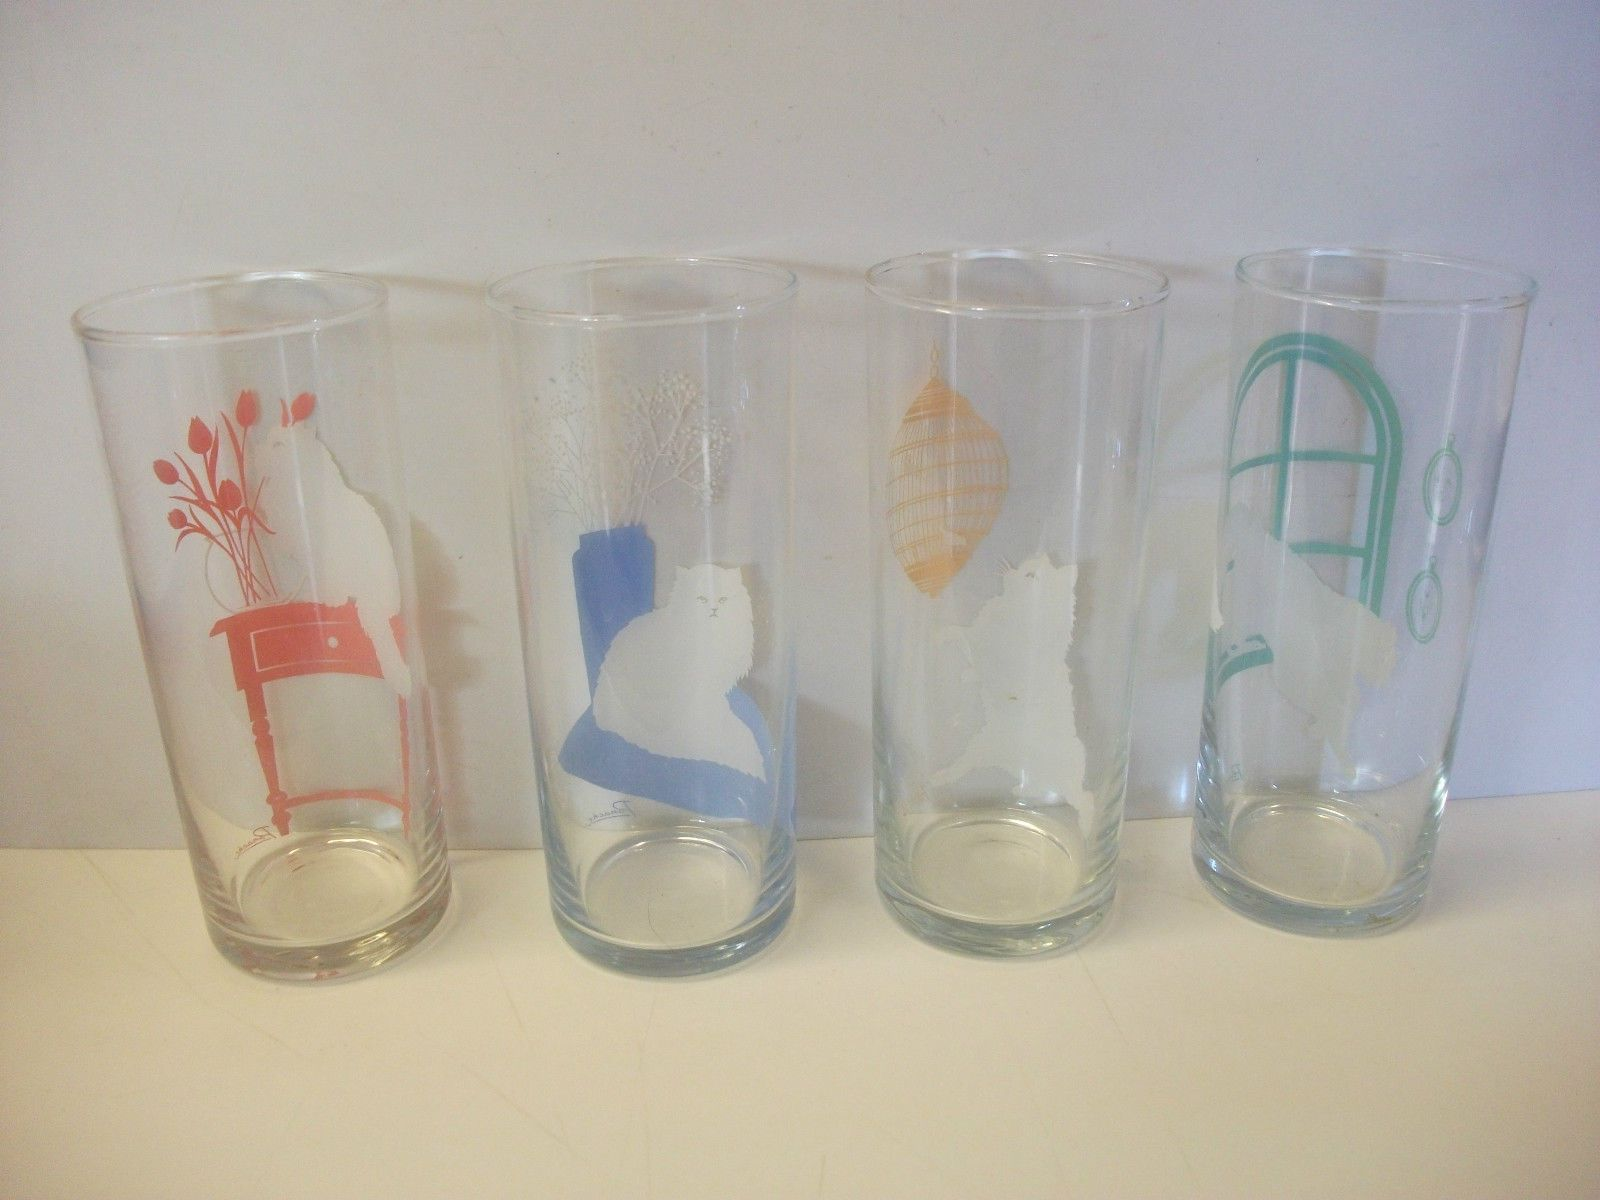 Drinking Glasses Designs Details About Vintage Set Of 4 Panache Drinking Glasses